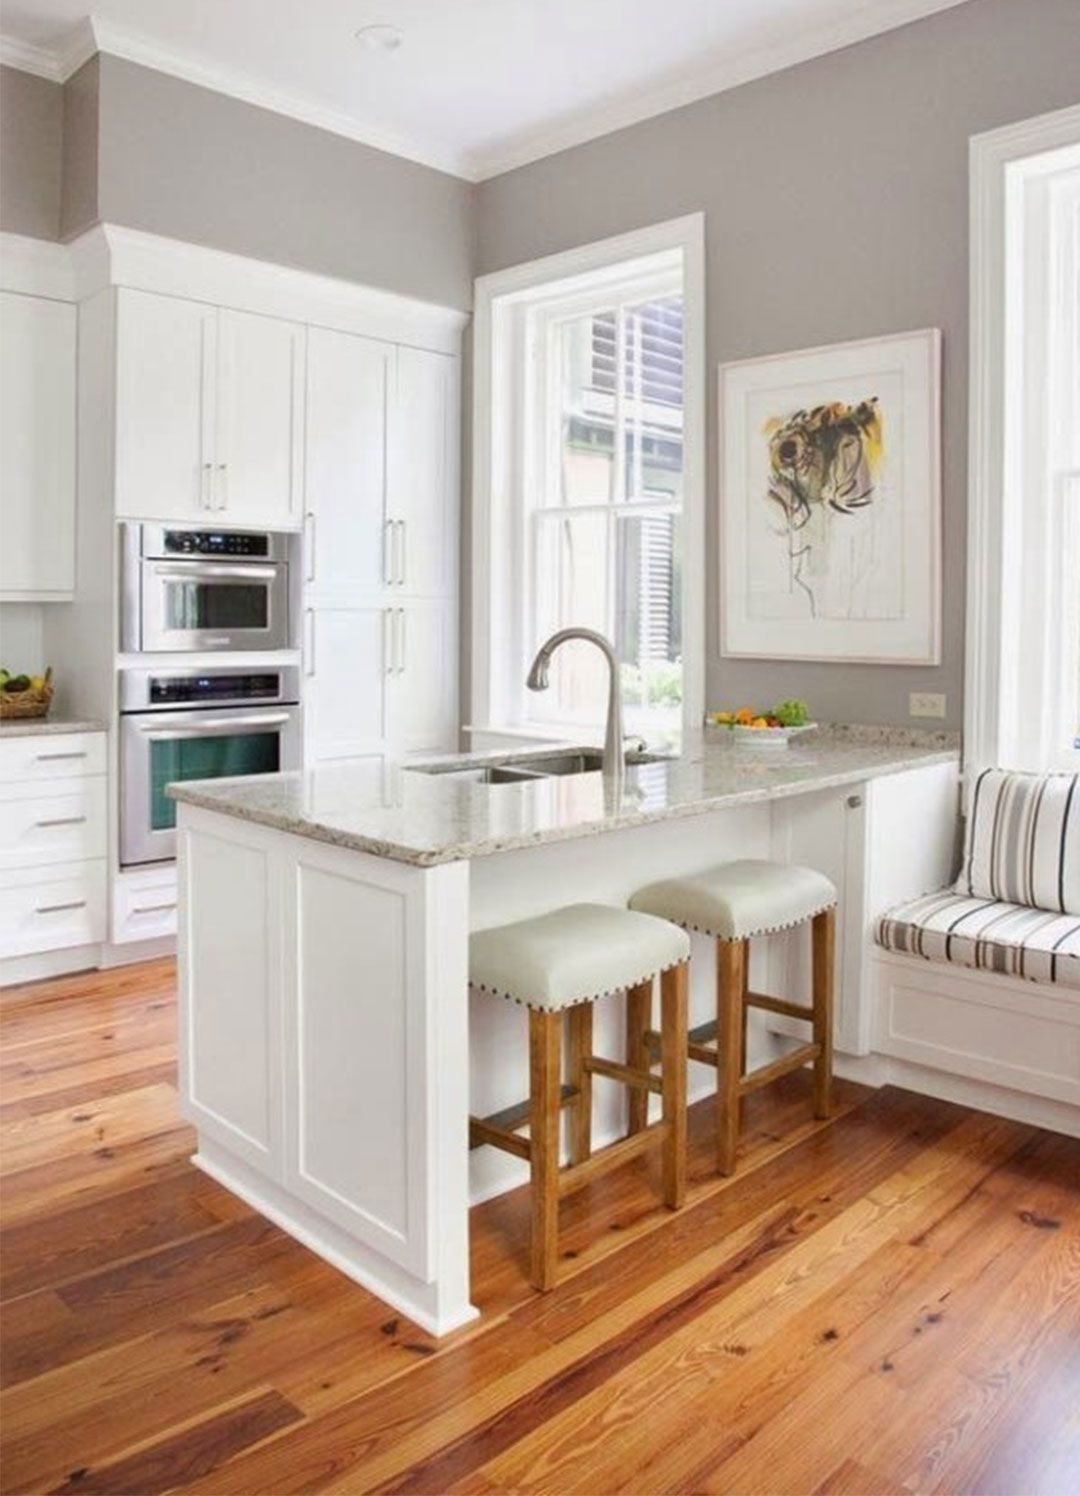 77 Beautiful Kitchen Design Ideas For The Heart Of Your Home ...